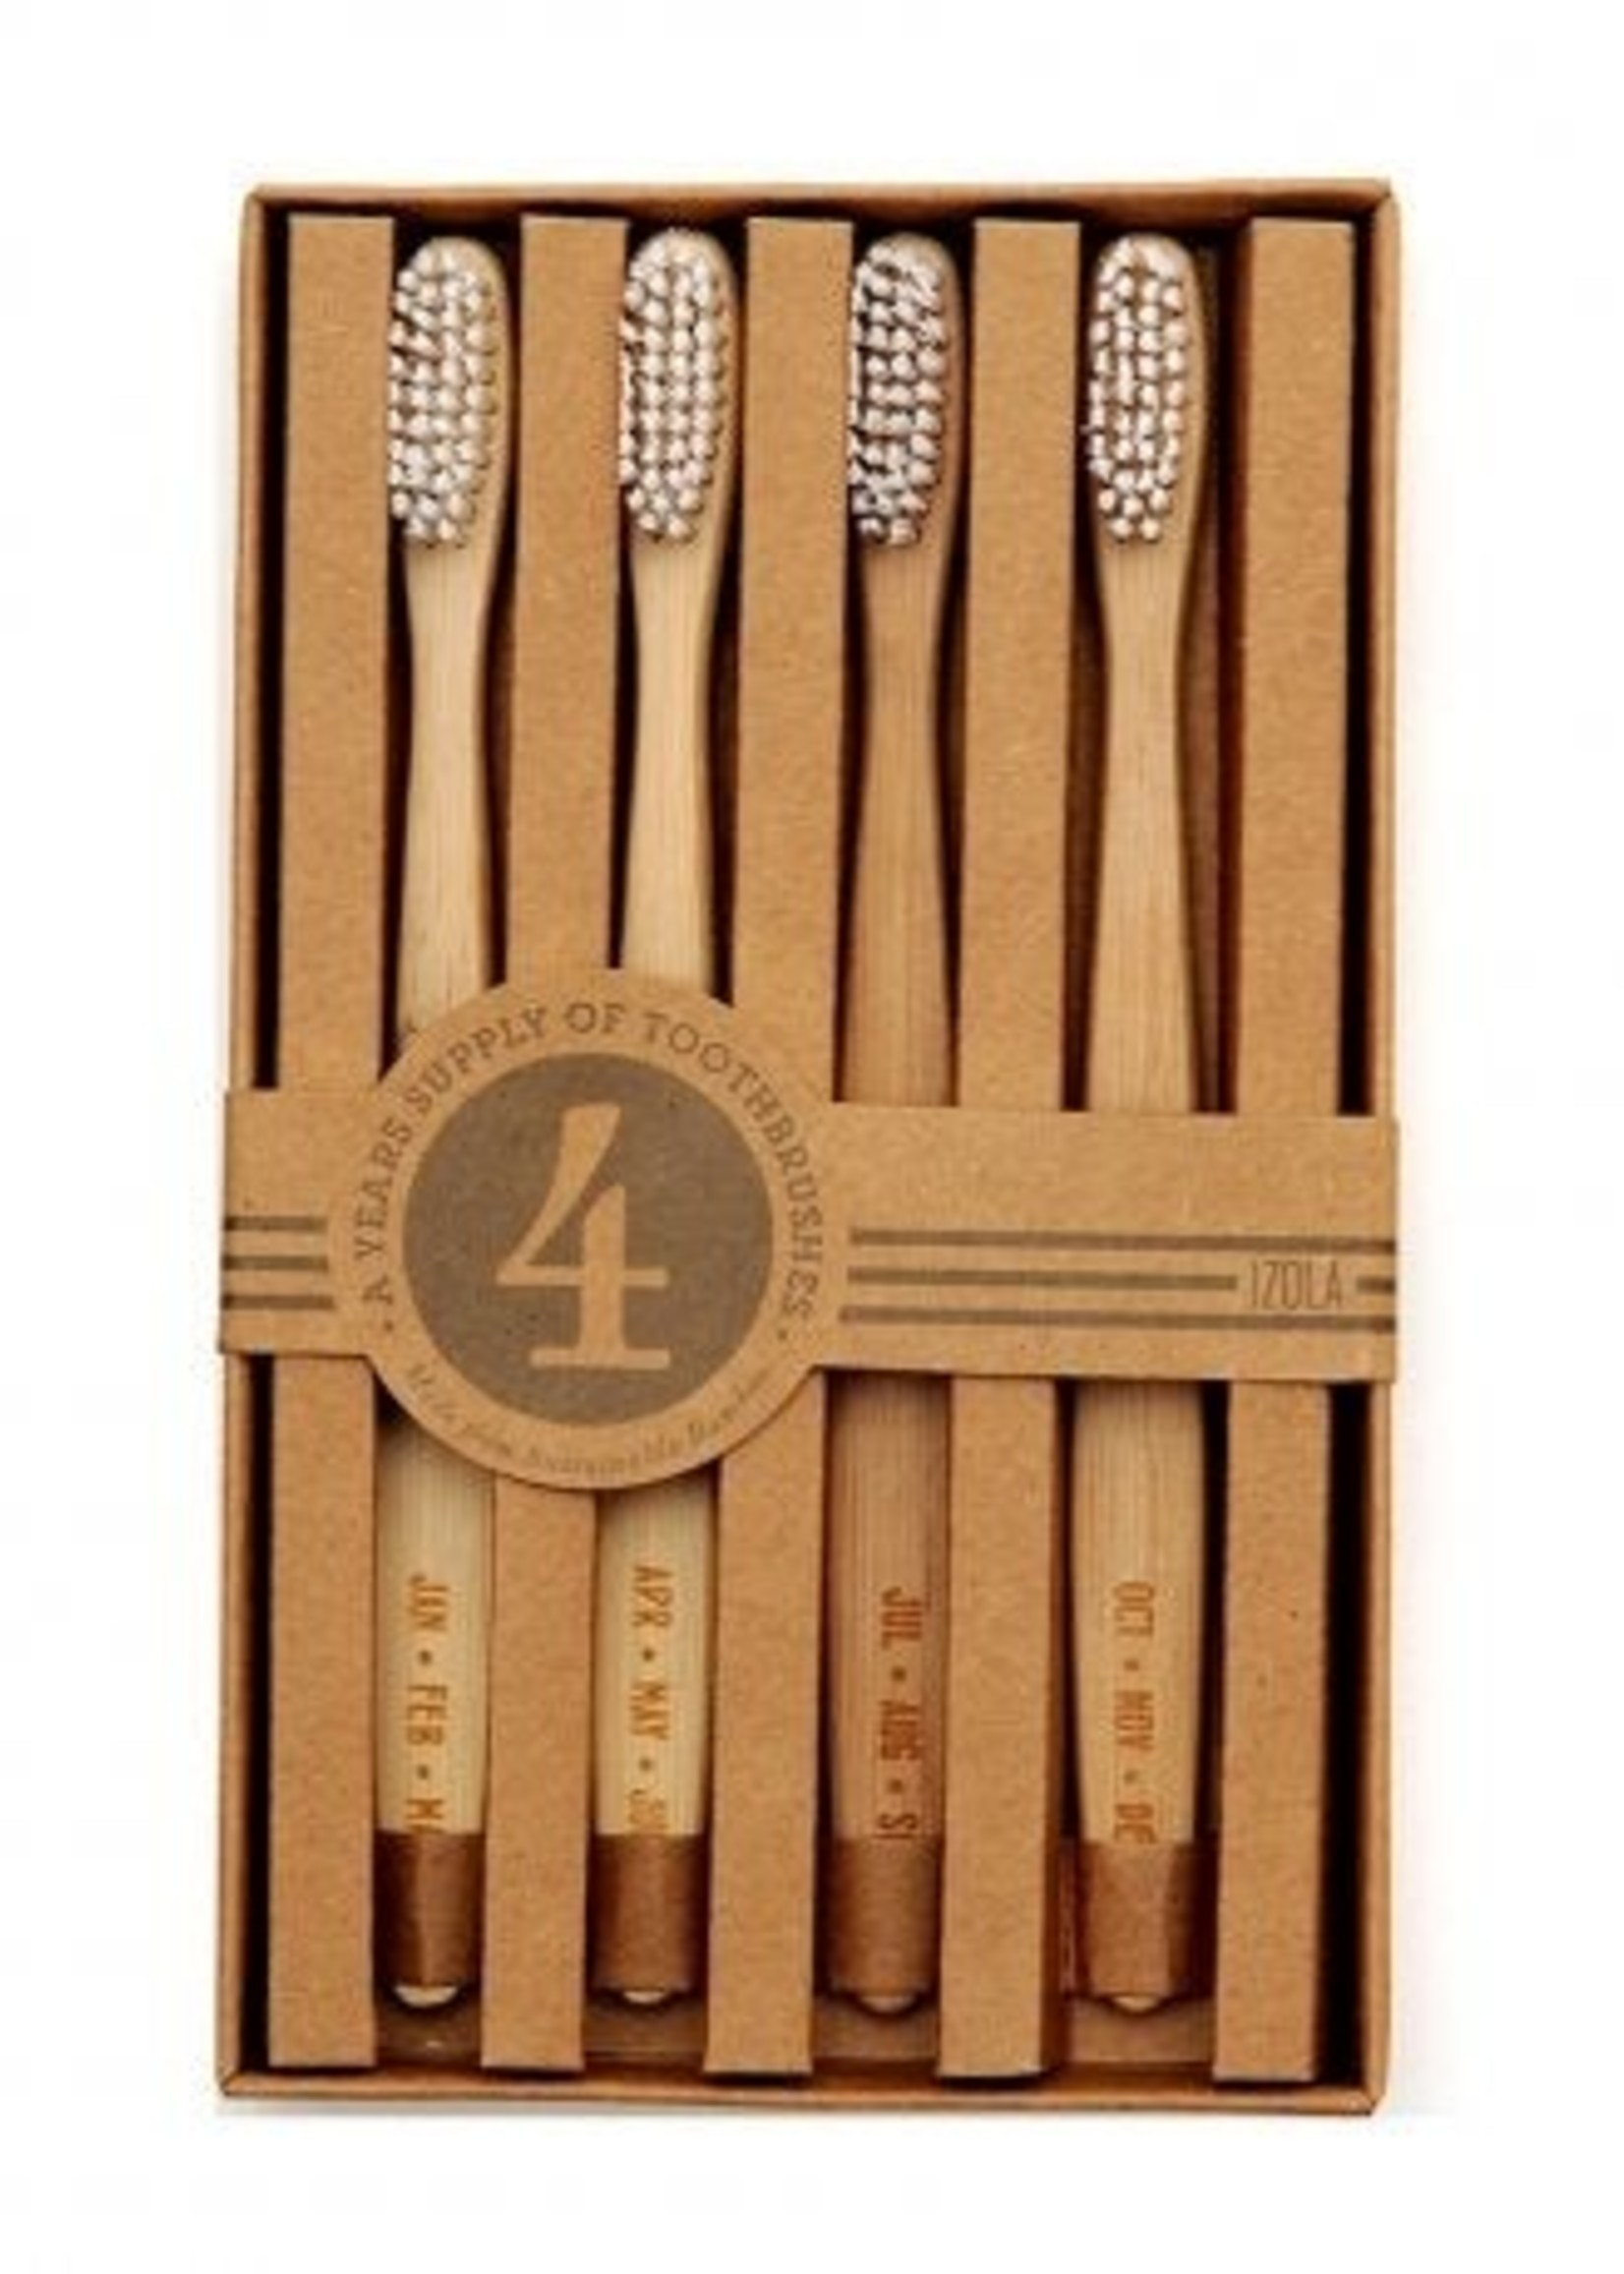 Izola Guest Toothbrushes - Set of 4